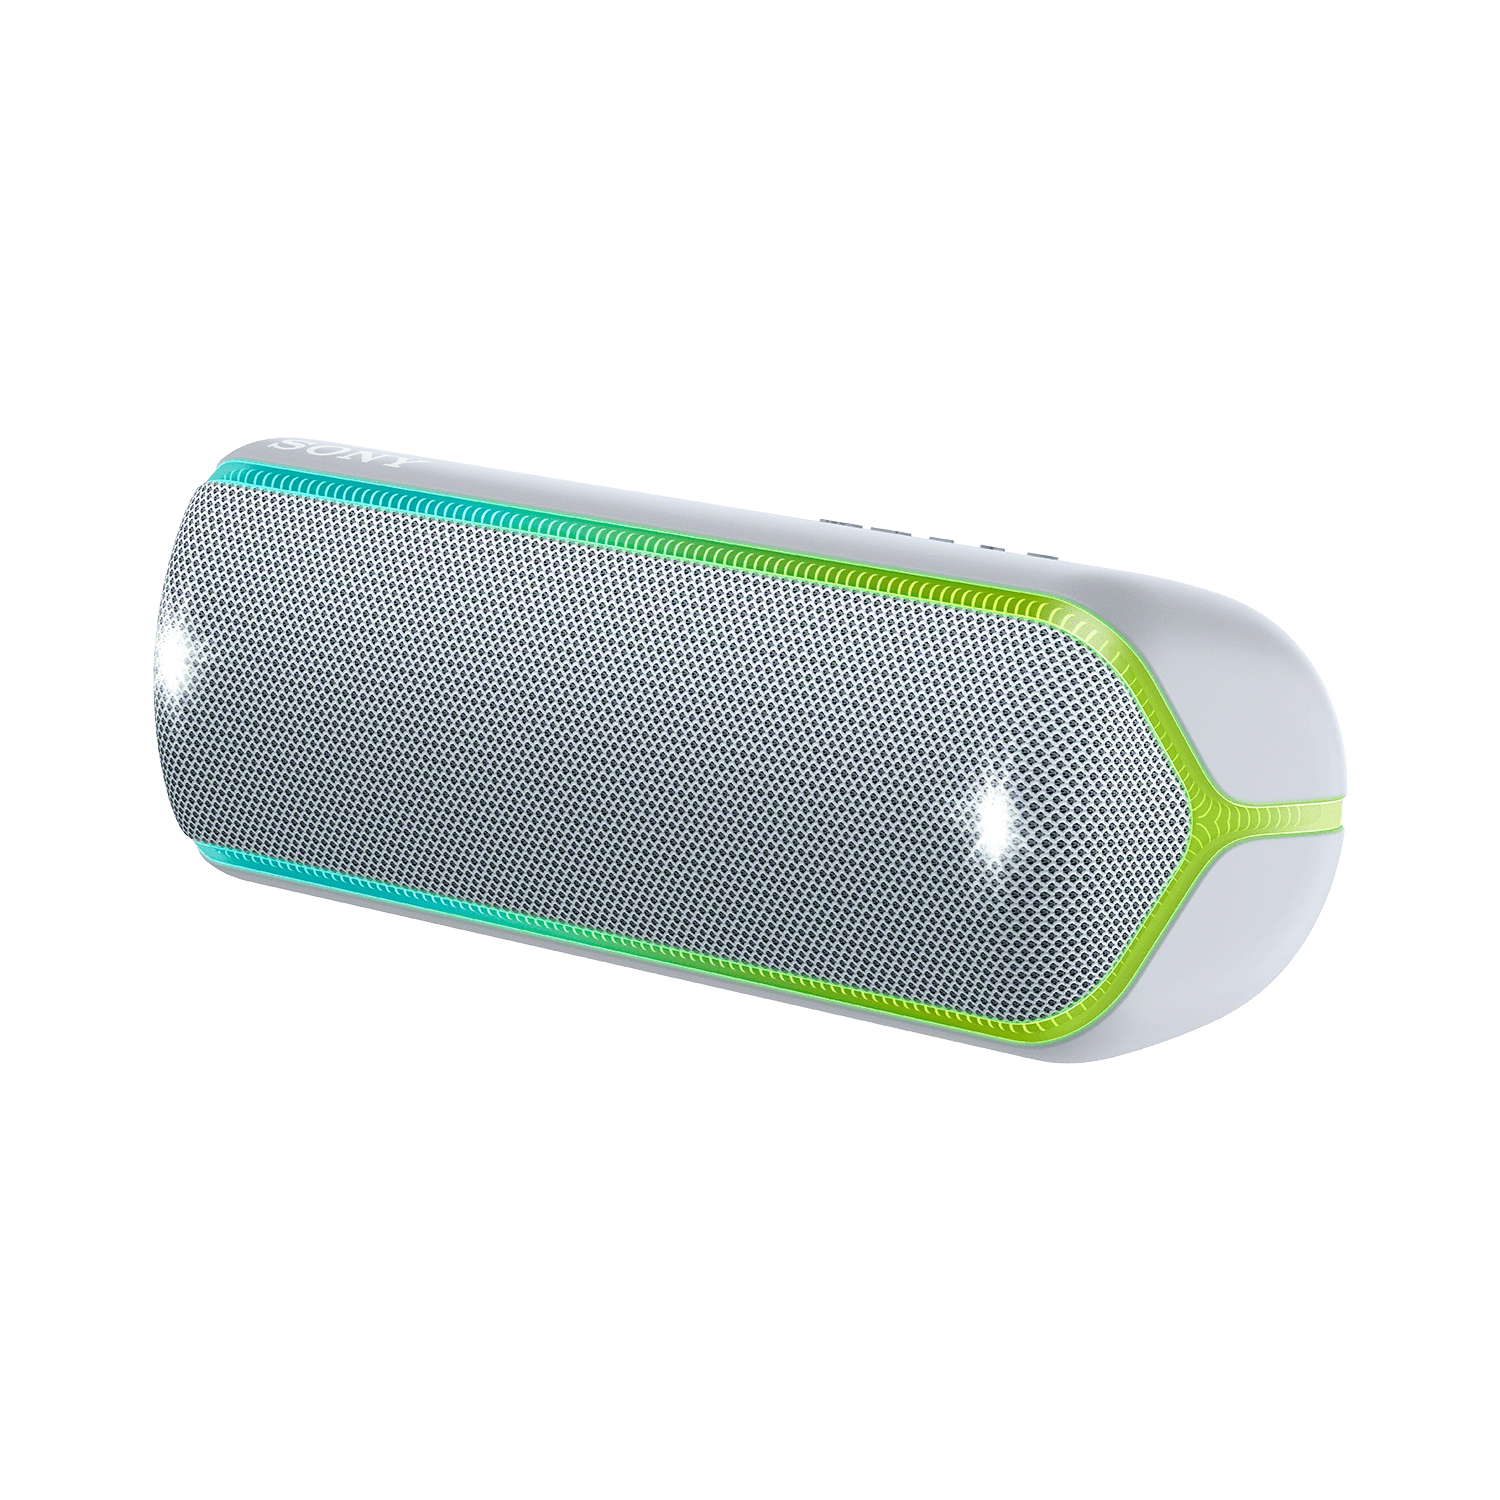 XB32 EXTRA BASS Portable BLUETOOTH Speaker (Grey)